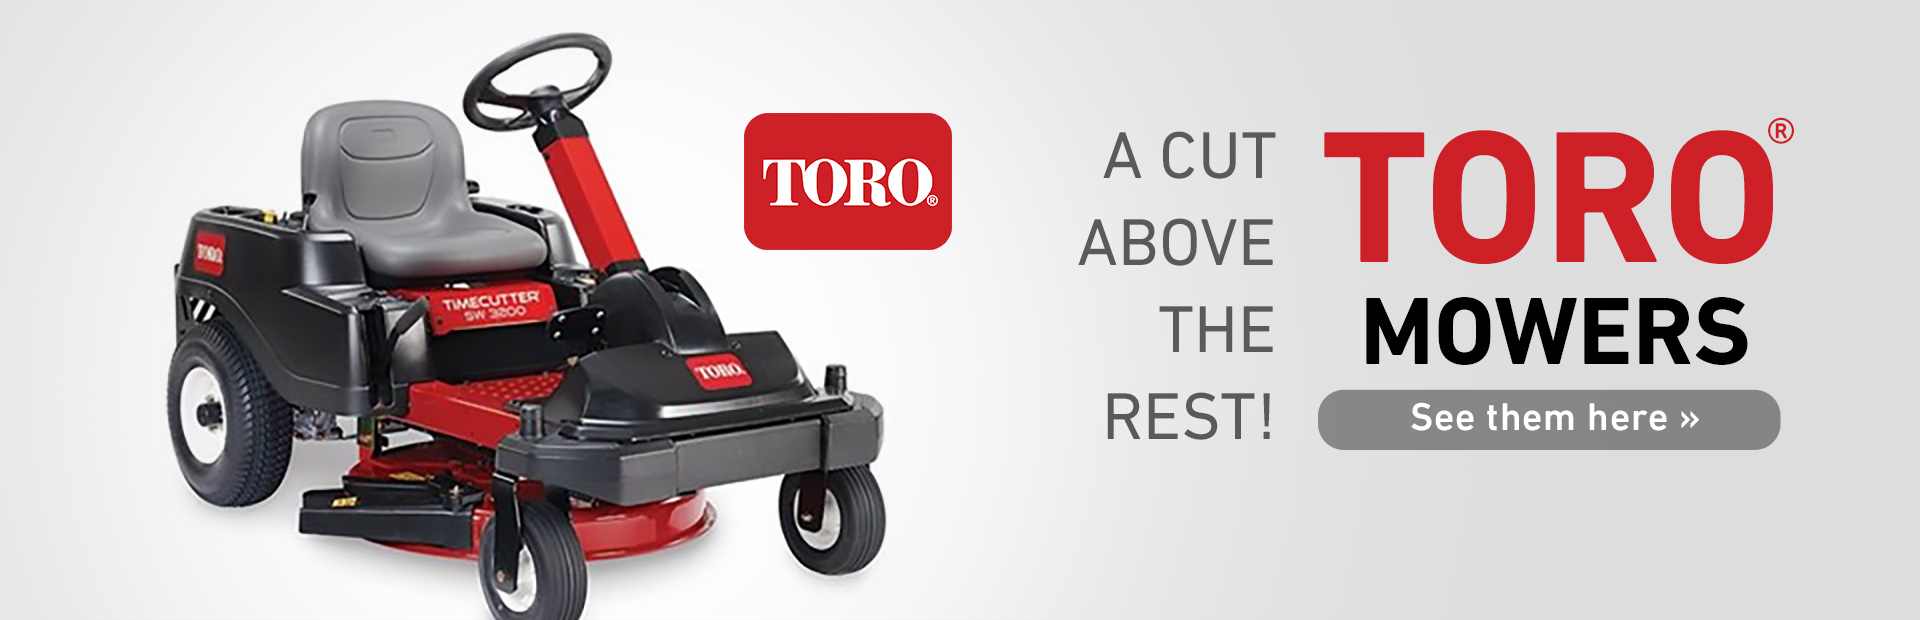 Toro Mowers: Click here to view the models.